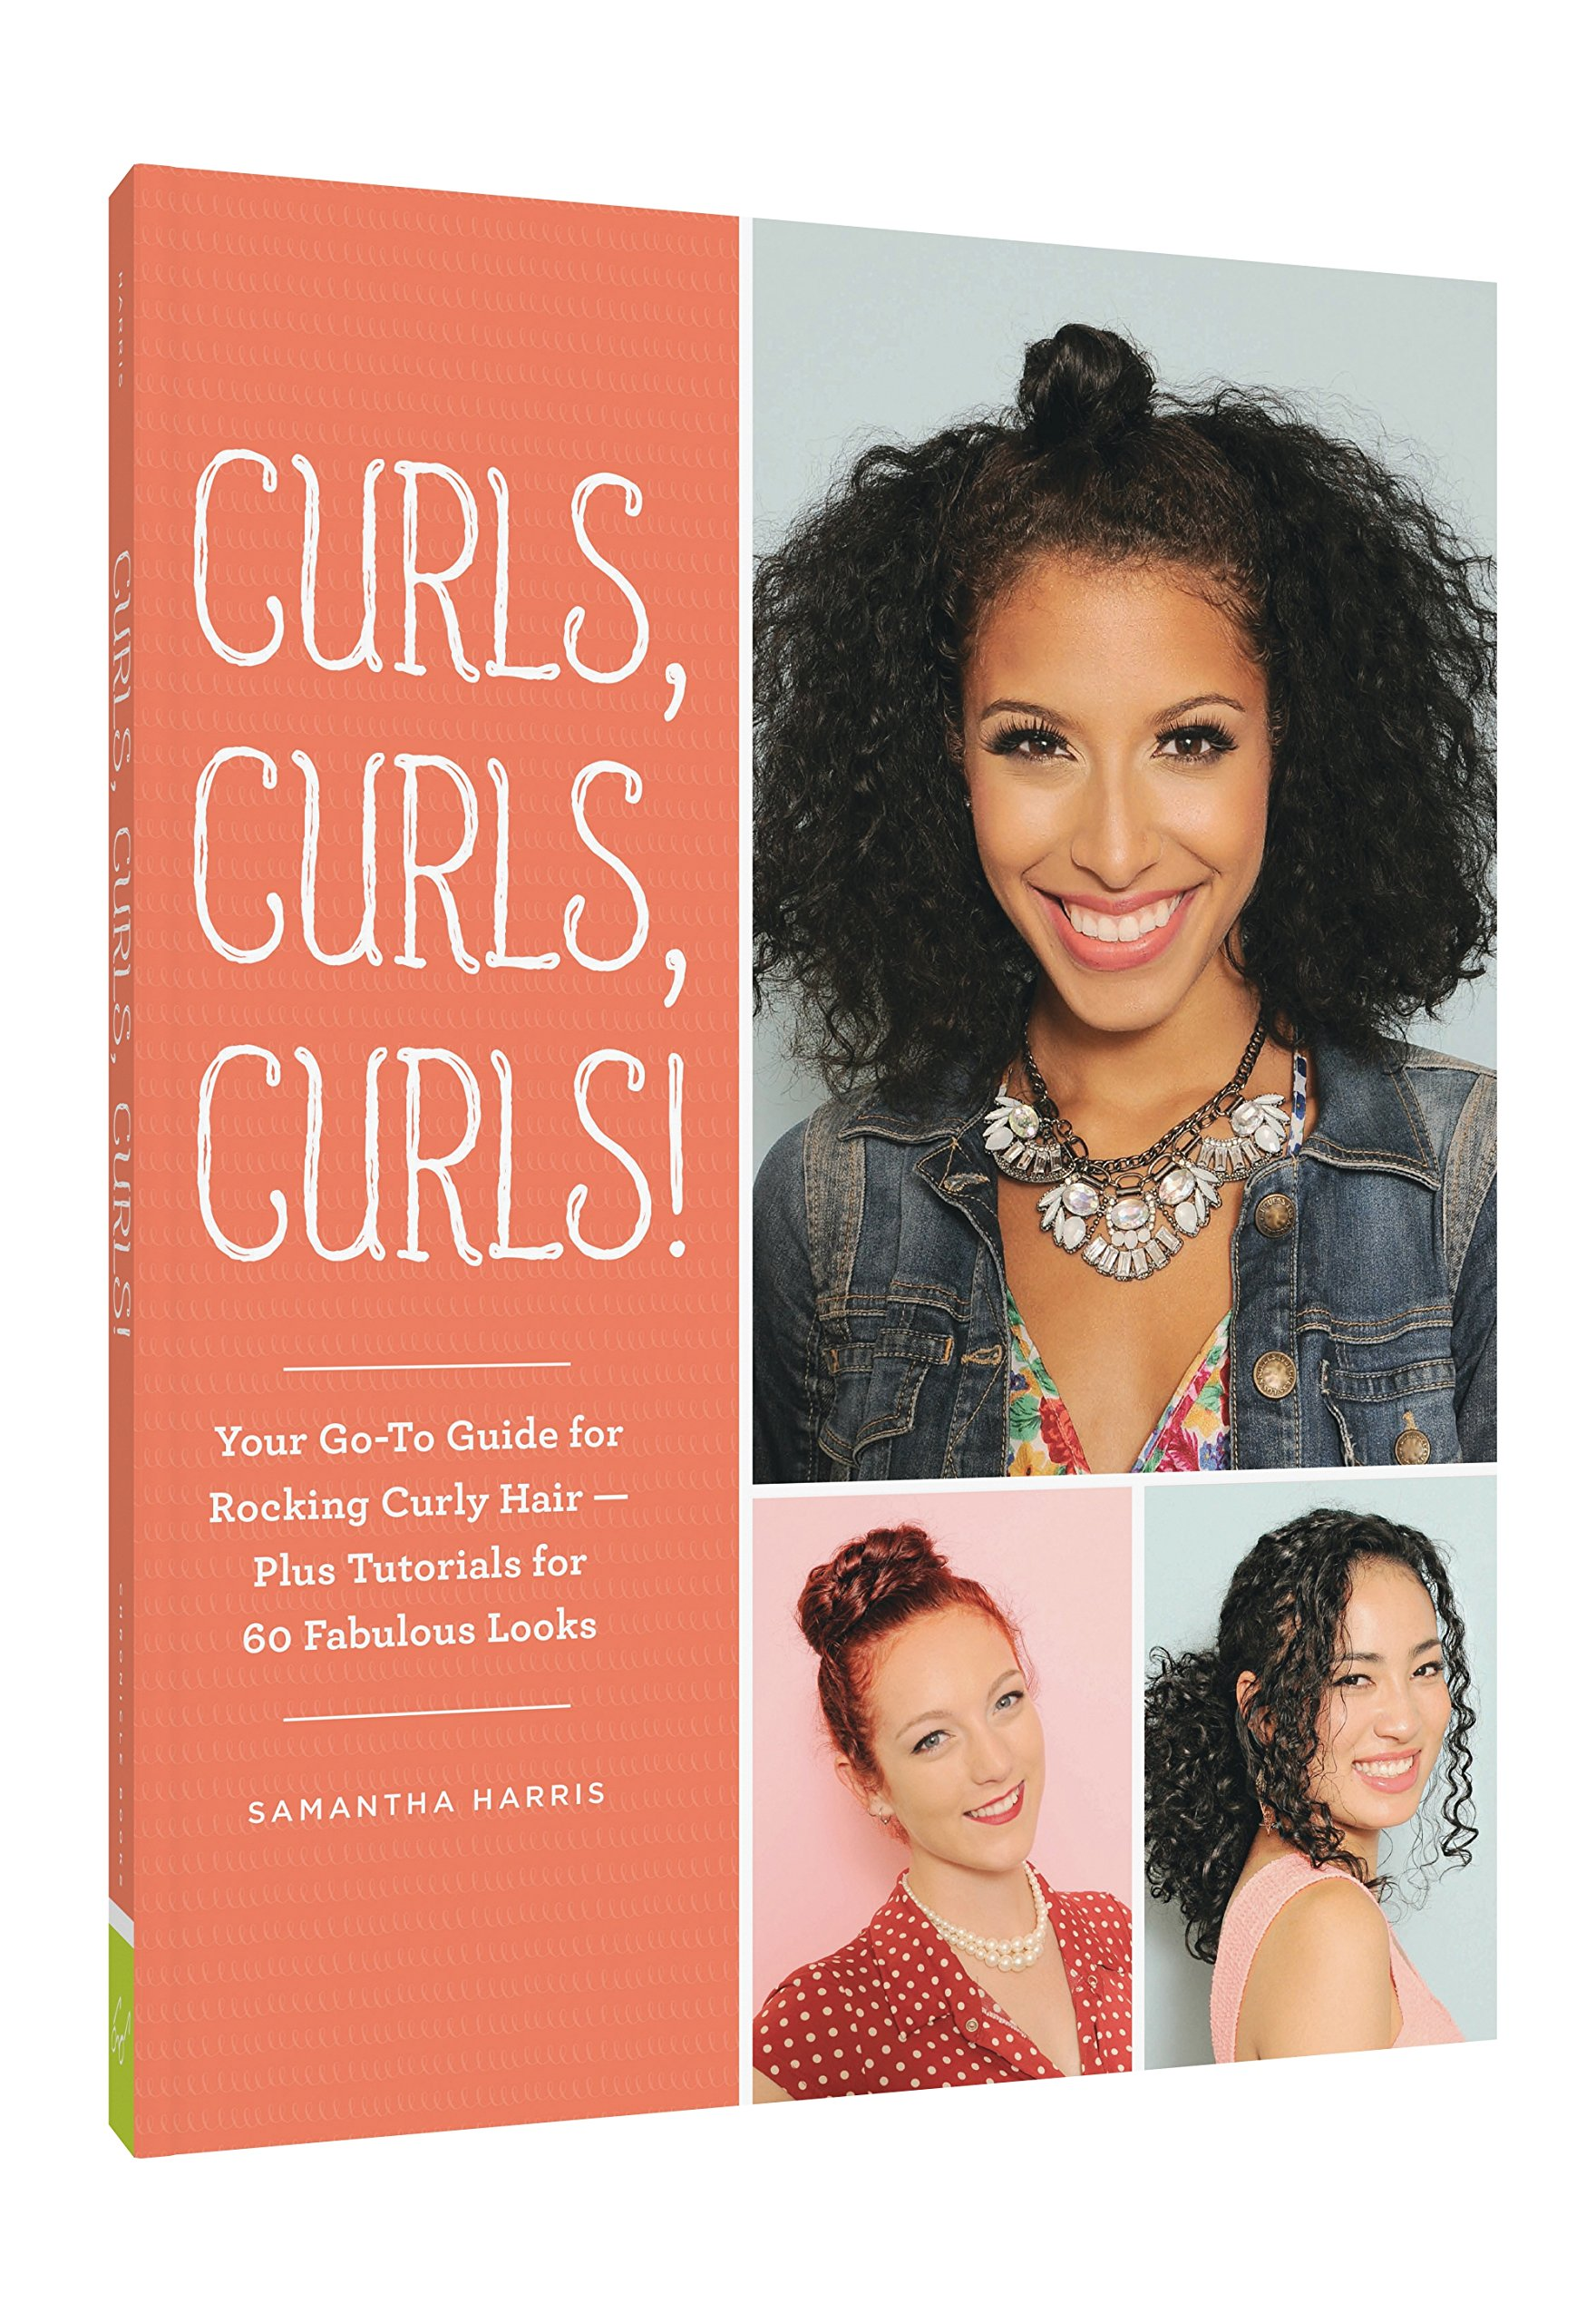 Curls, Curls, Curls: Your Go-To Guide for Rocking Curly Hair - Plus  Tutorials for 60 Fabulous Looks: Samantha Harris: 9781452158341:  Amazon.com: Books